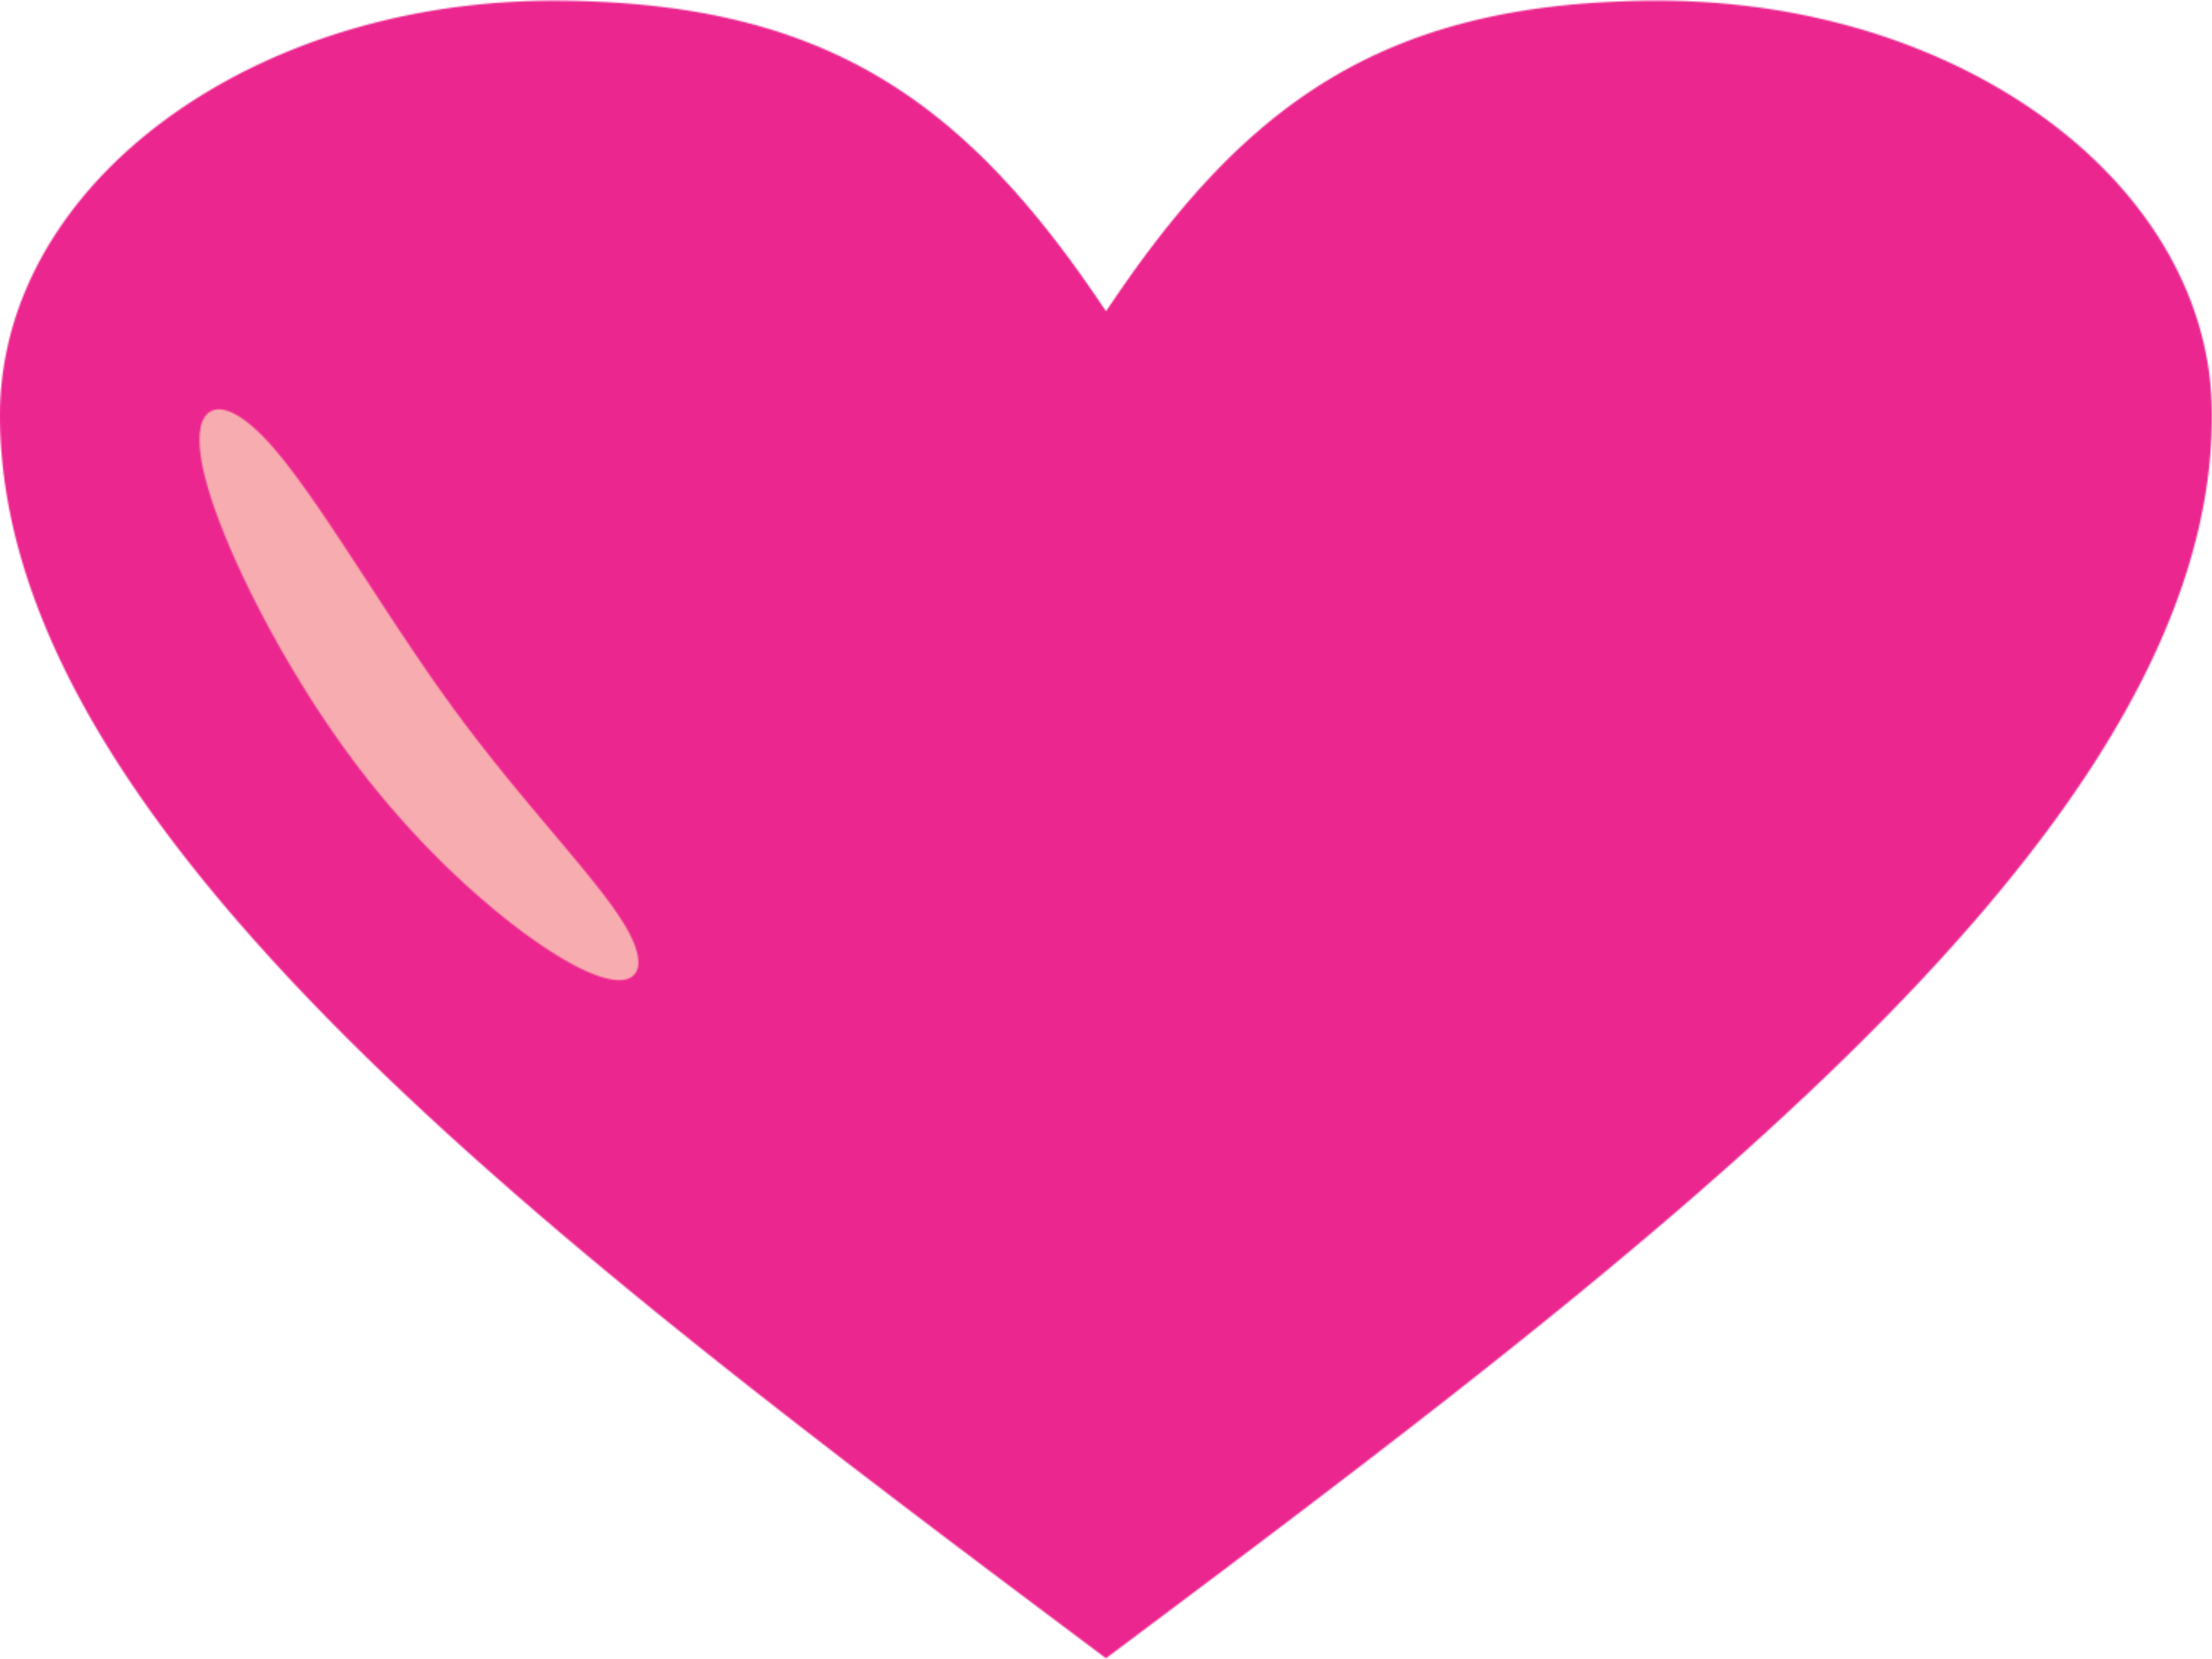 Pink Heart PNG - Psfont tk